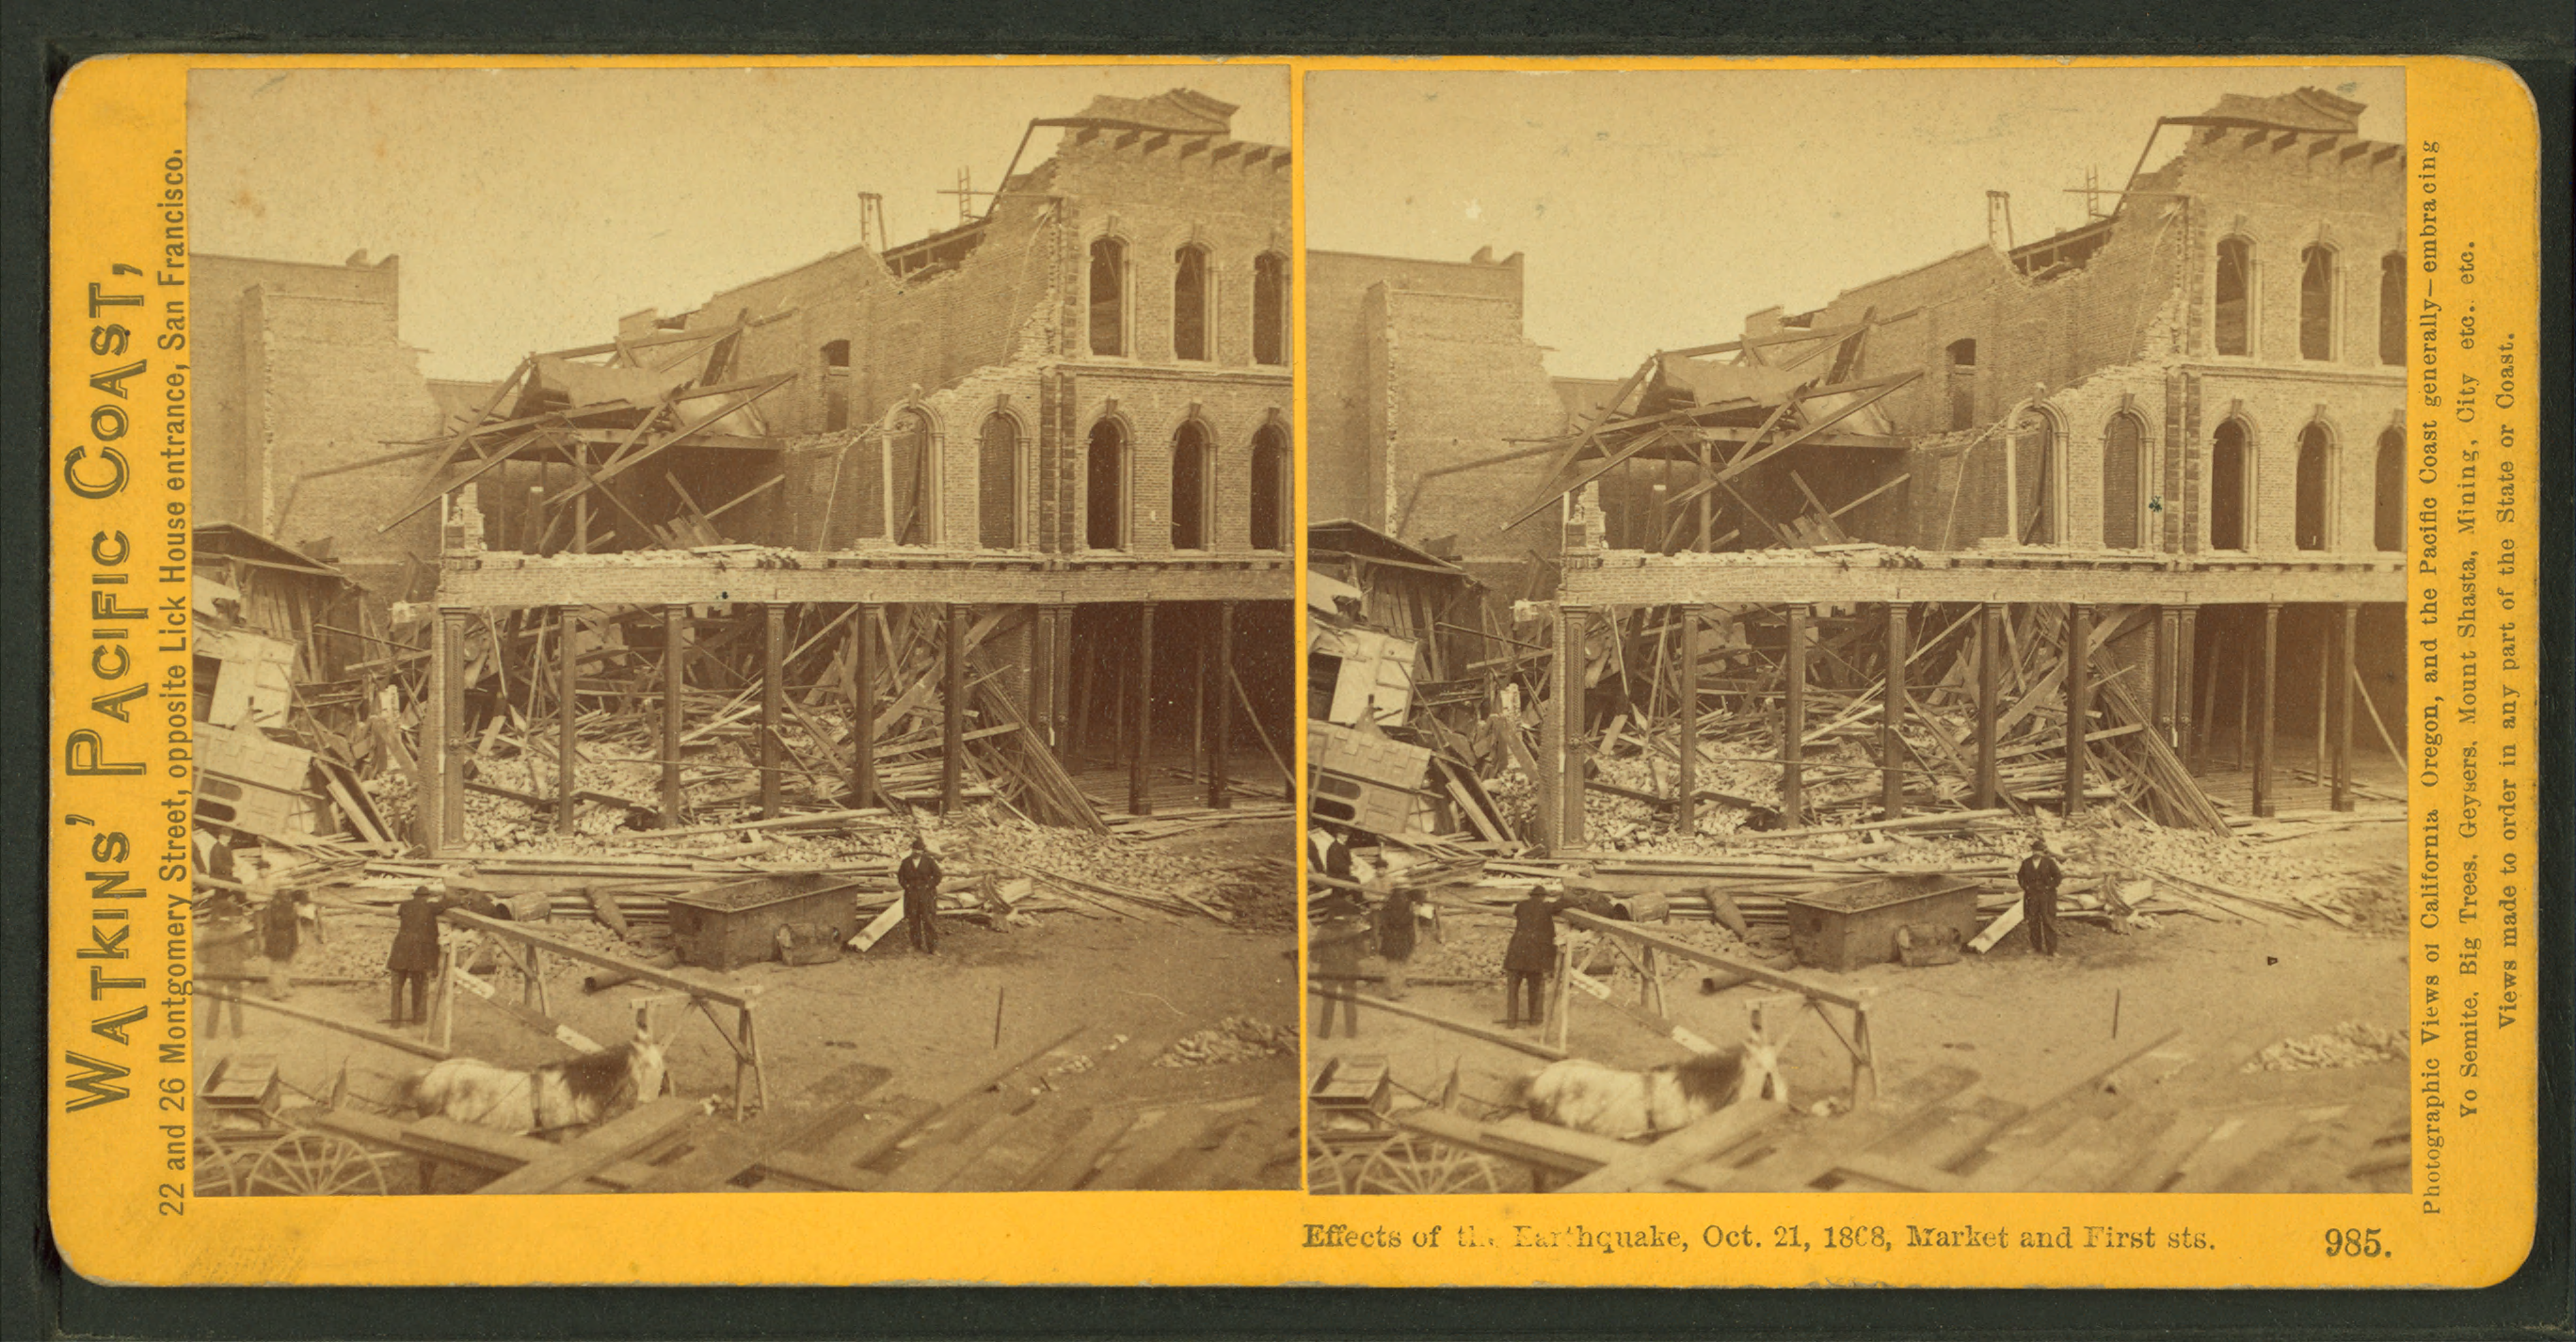 file effects of the earthquake oct 21 1868 market and first